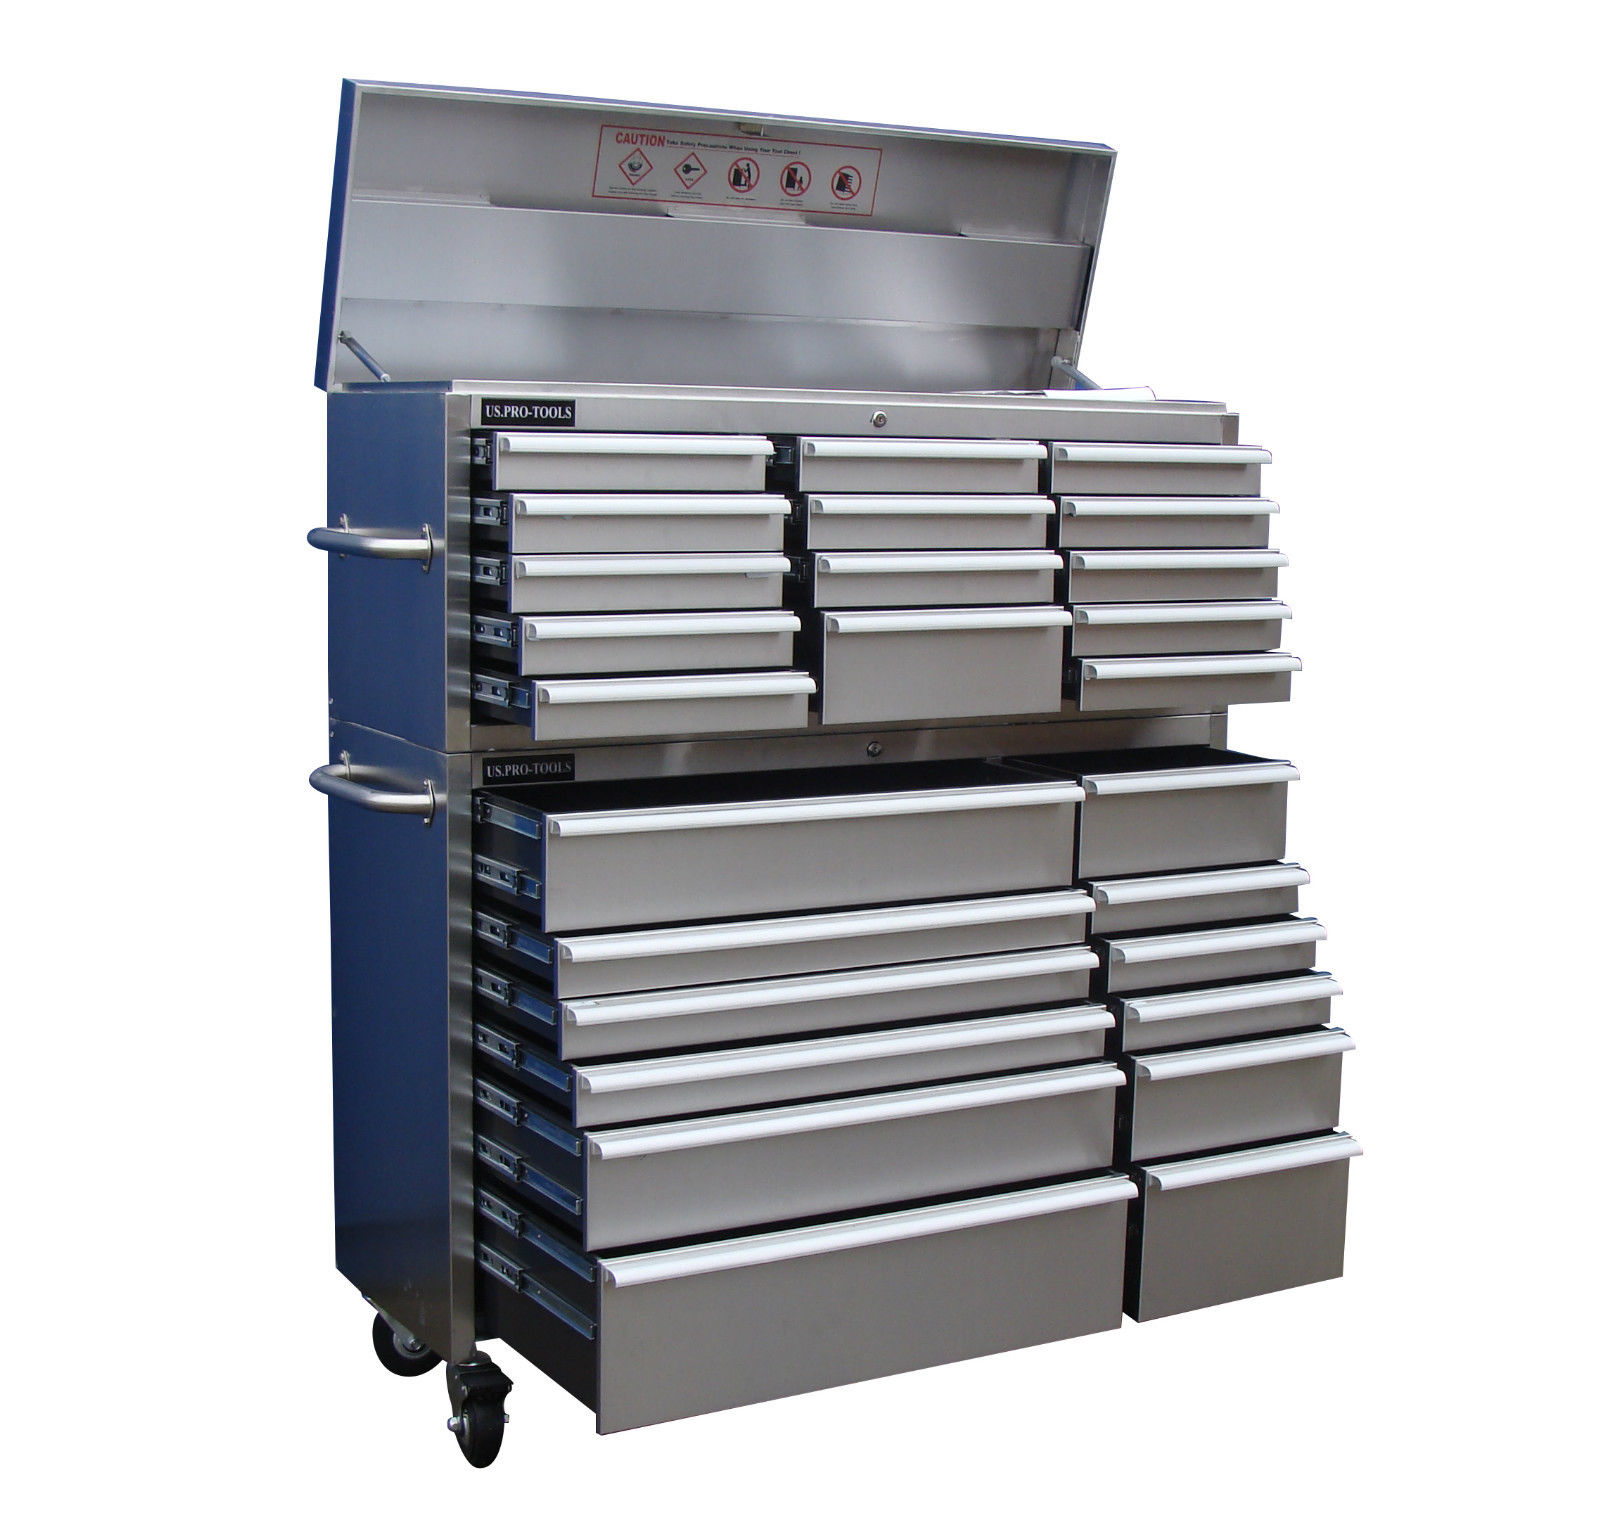 https://usprotoolboxes.com/wp-content/uploads/imported/9/40-US-PRO-MASSIVE-TOOL-CHEST-CABINET-BOX-STAINLESS-STEEL-54-FINANCE-AVAILABLE-311124254989.jpg